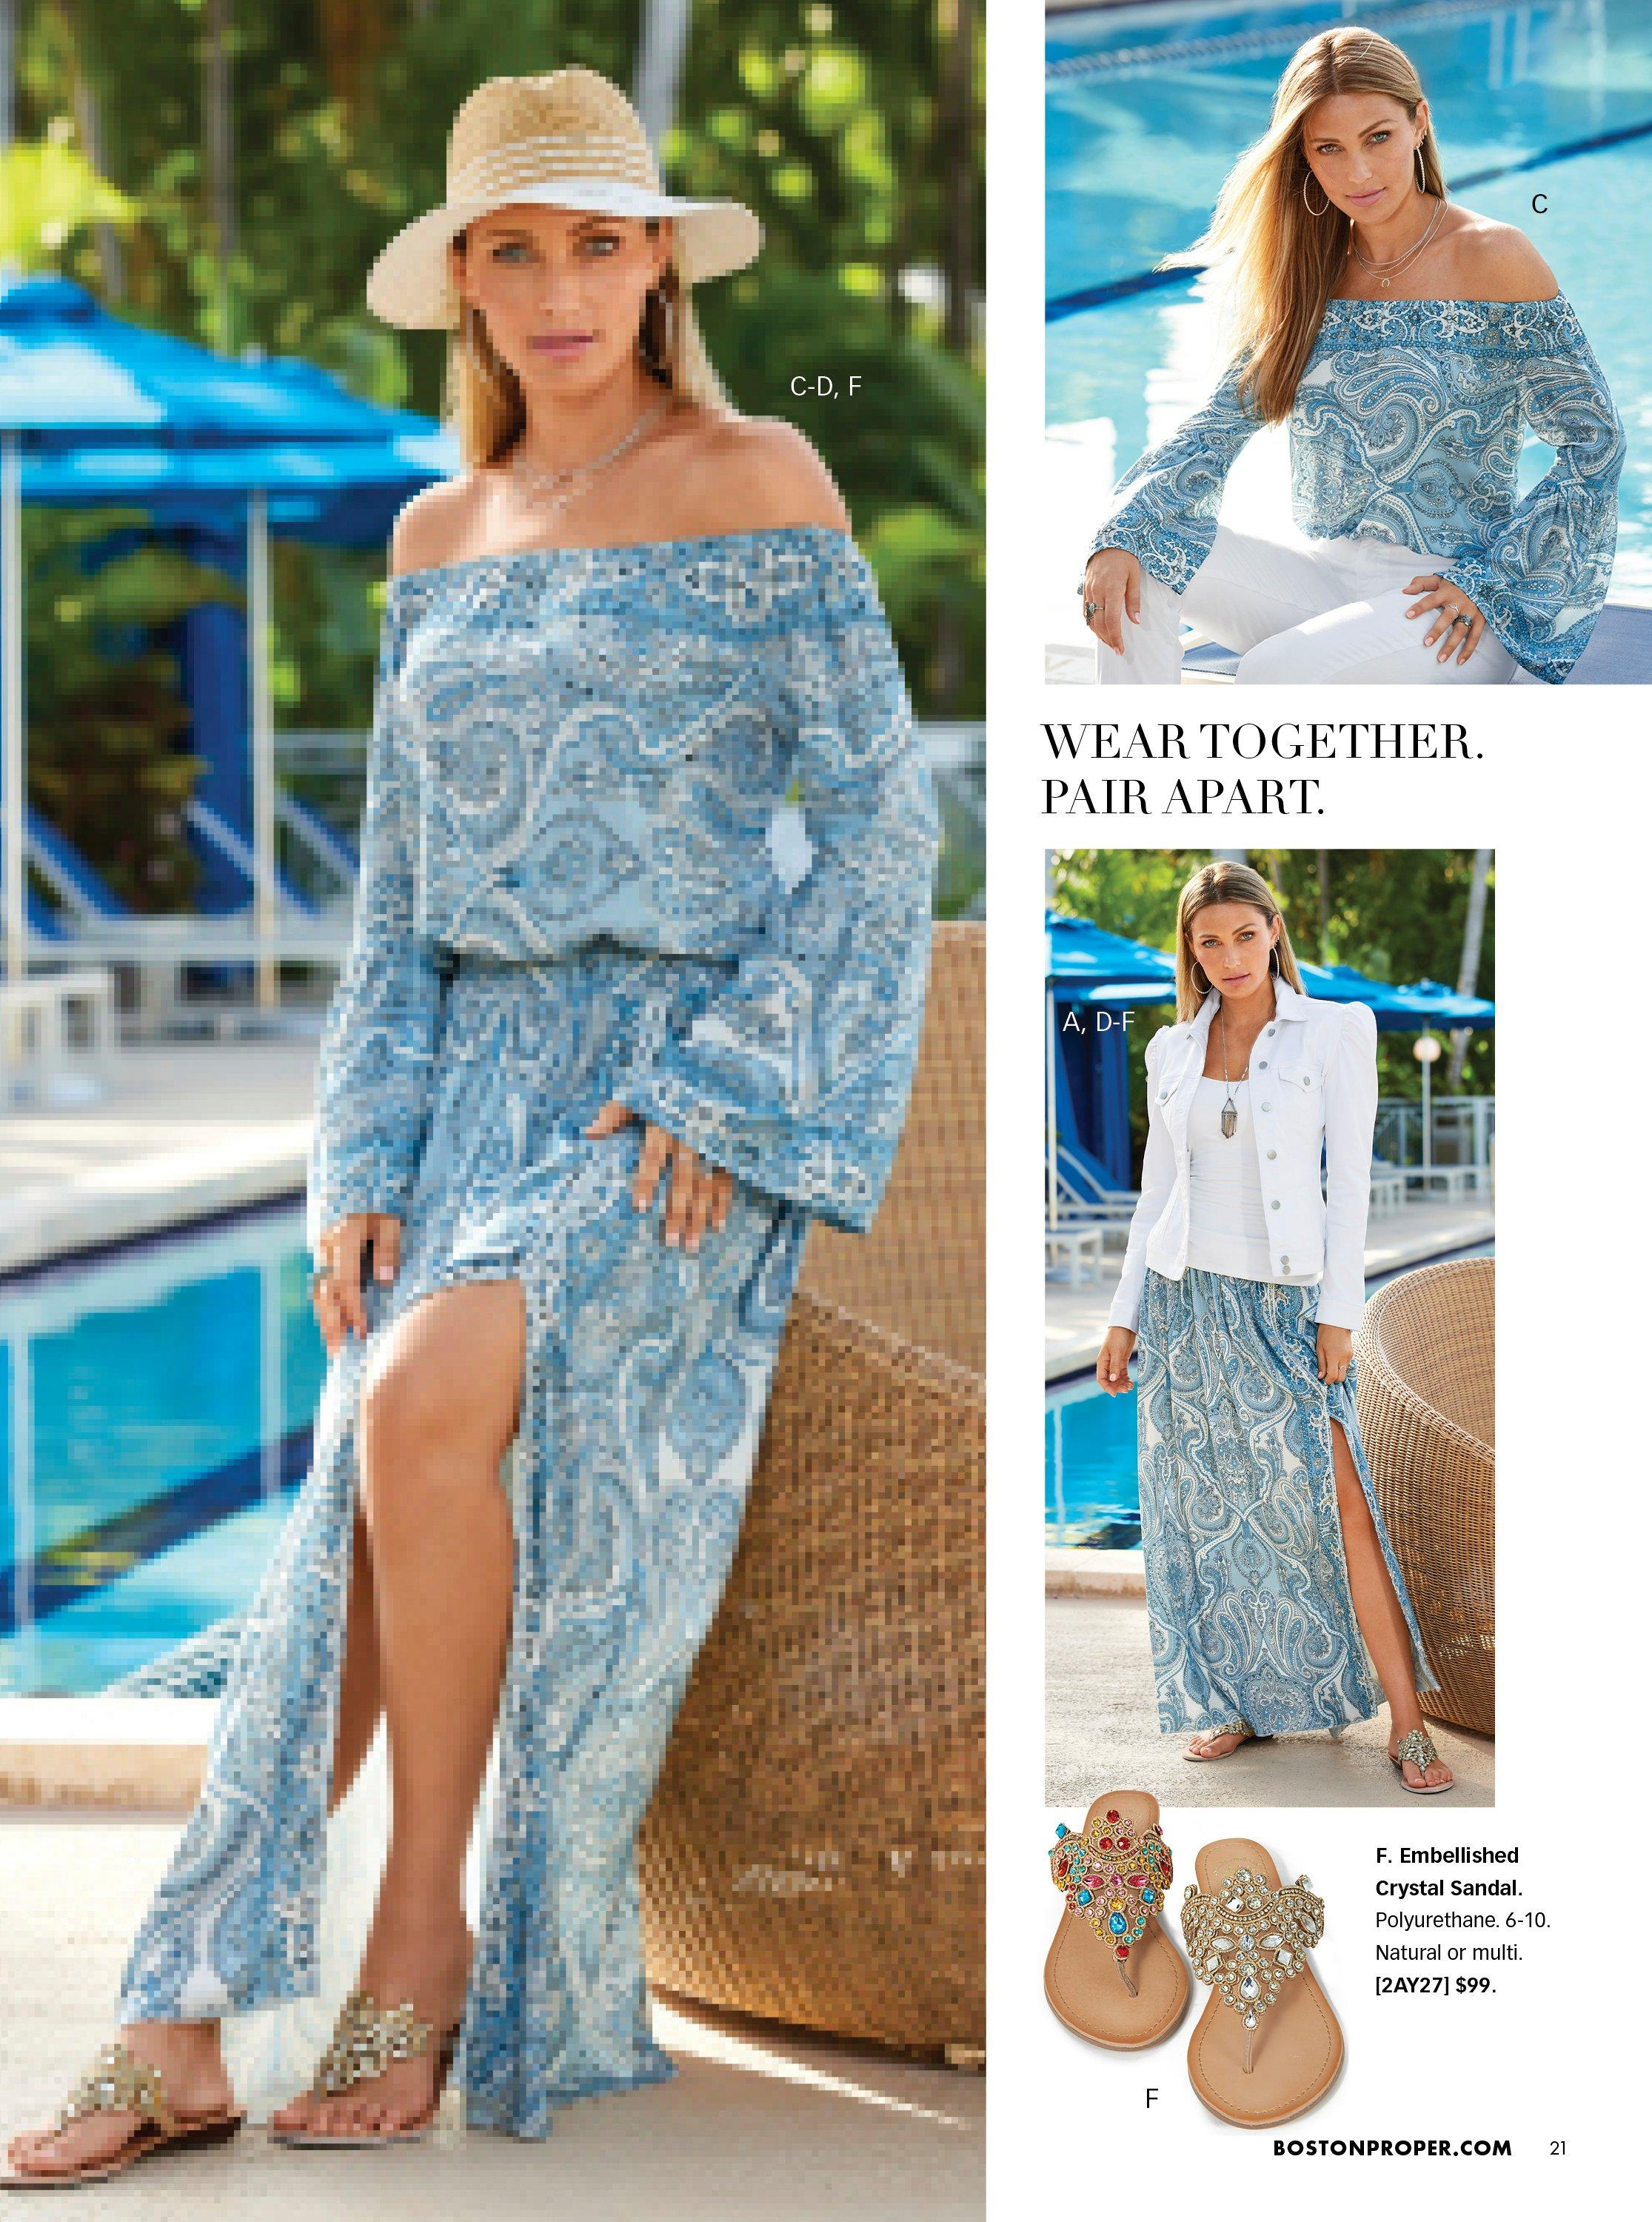 left model wearing a blue printed off-the-shoulder flare sleeve top, blue printed maxi skirt with side slit, straw hat, and crystal embellished sandals. top right model wearing a blue printed off-the-shoulder flare-sleeve top and white pants. bottom right model wearing a white puff-sleeve denim jacket, white tank top, blue printed side slit maxi skirt, and crystal embellished sandals. pull out image of crystal sandals.